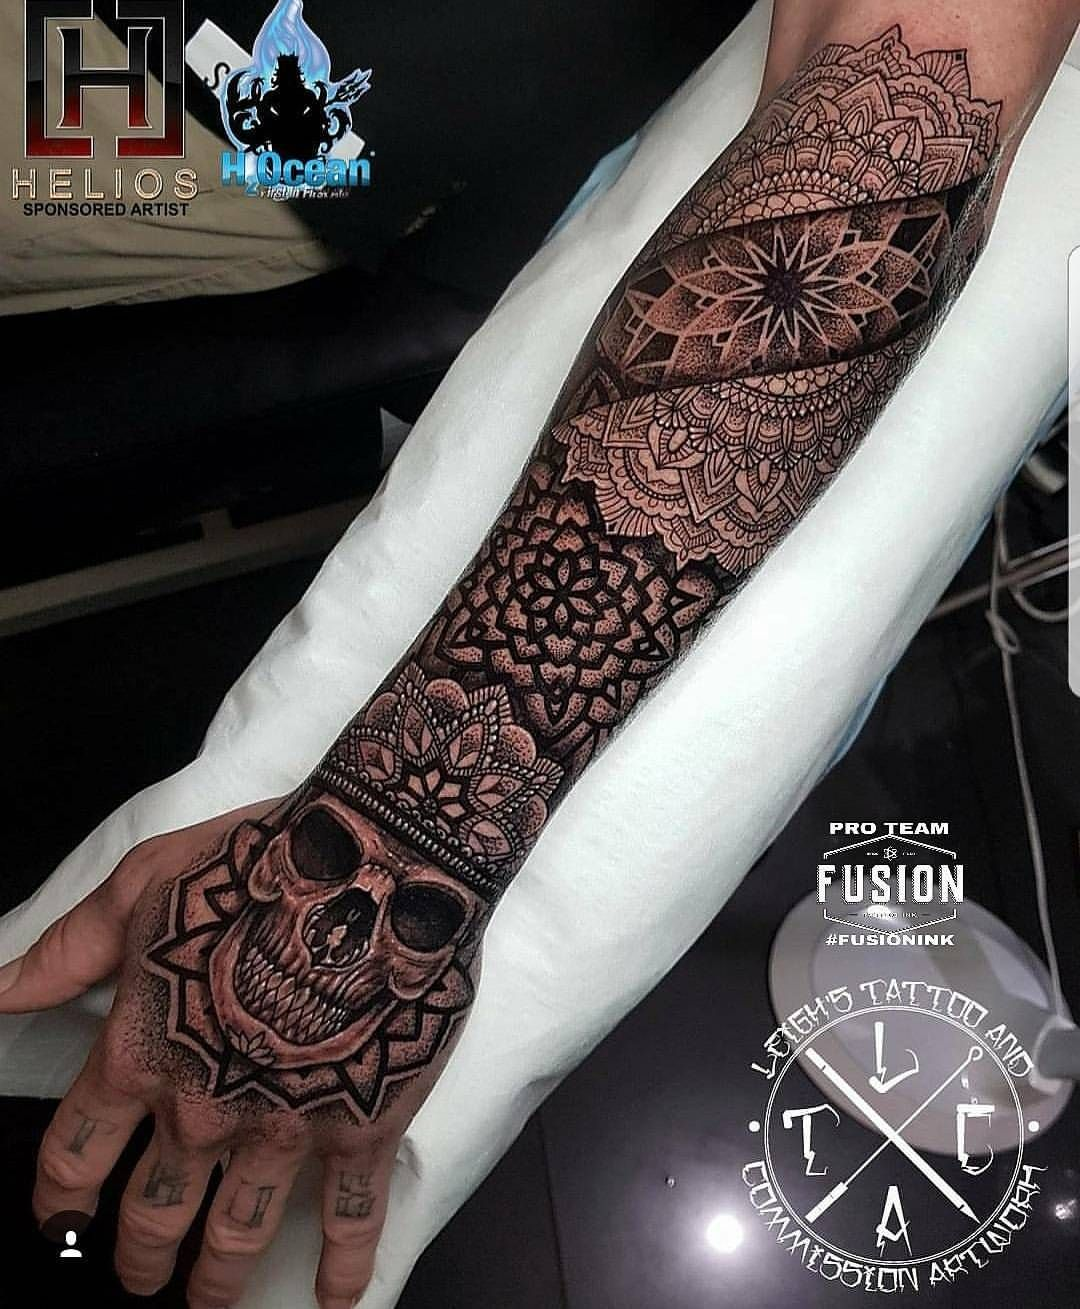 5 149 Likes 12 Comments Fusion Ink Fusion Ink On Instagram Beautiful Work By Leigh Tattoos Using Fusion Forearm Tattoos Mandala Hand Tattoos Tattoos